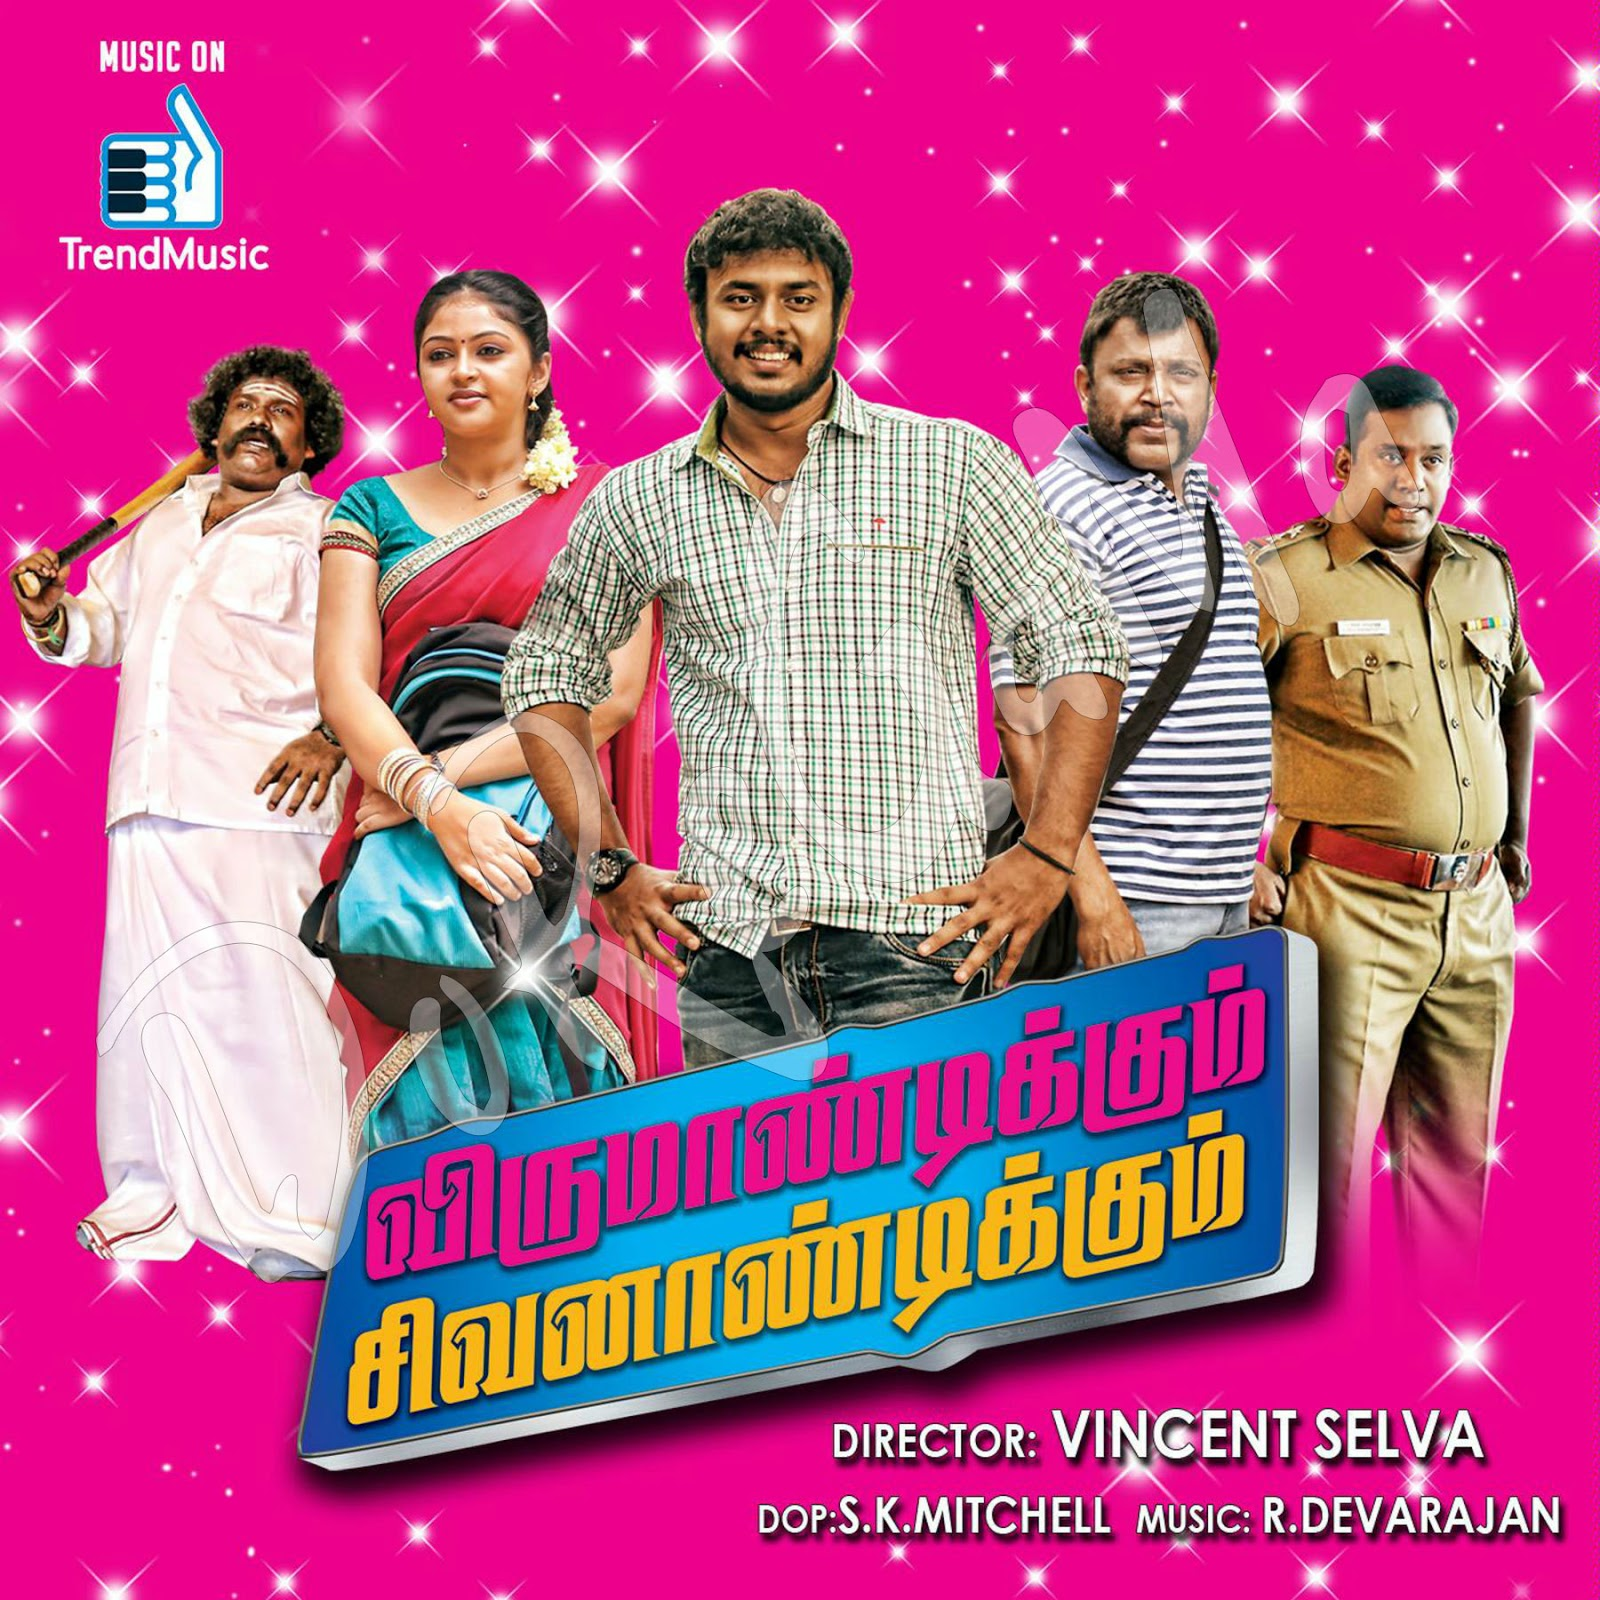 Virumandikkum Sivanandikkum 2016 Original CD Front Cover Poster Wallpaper HD